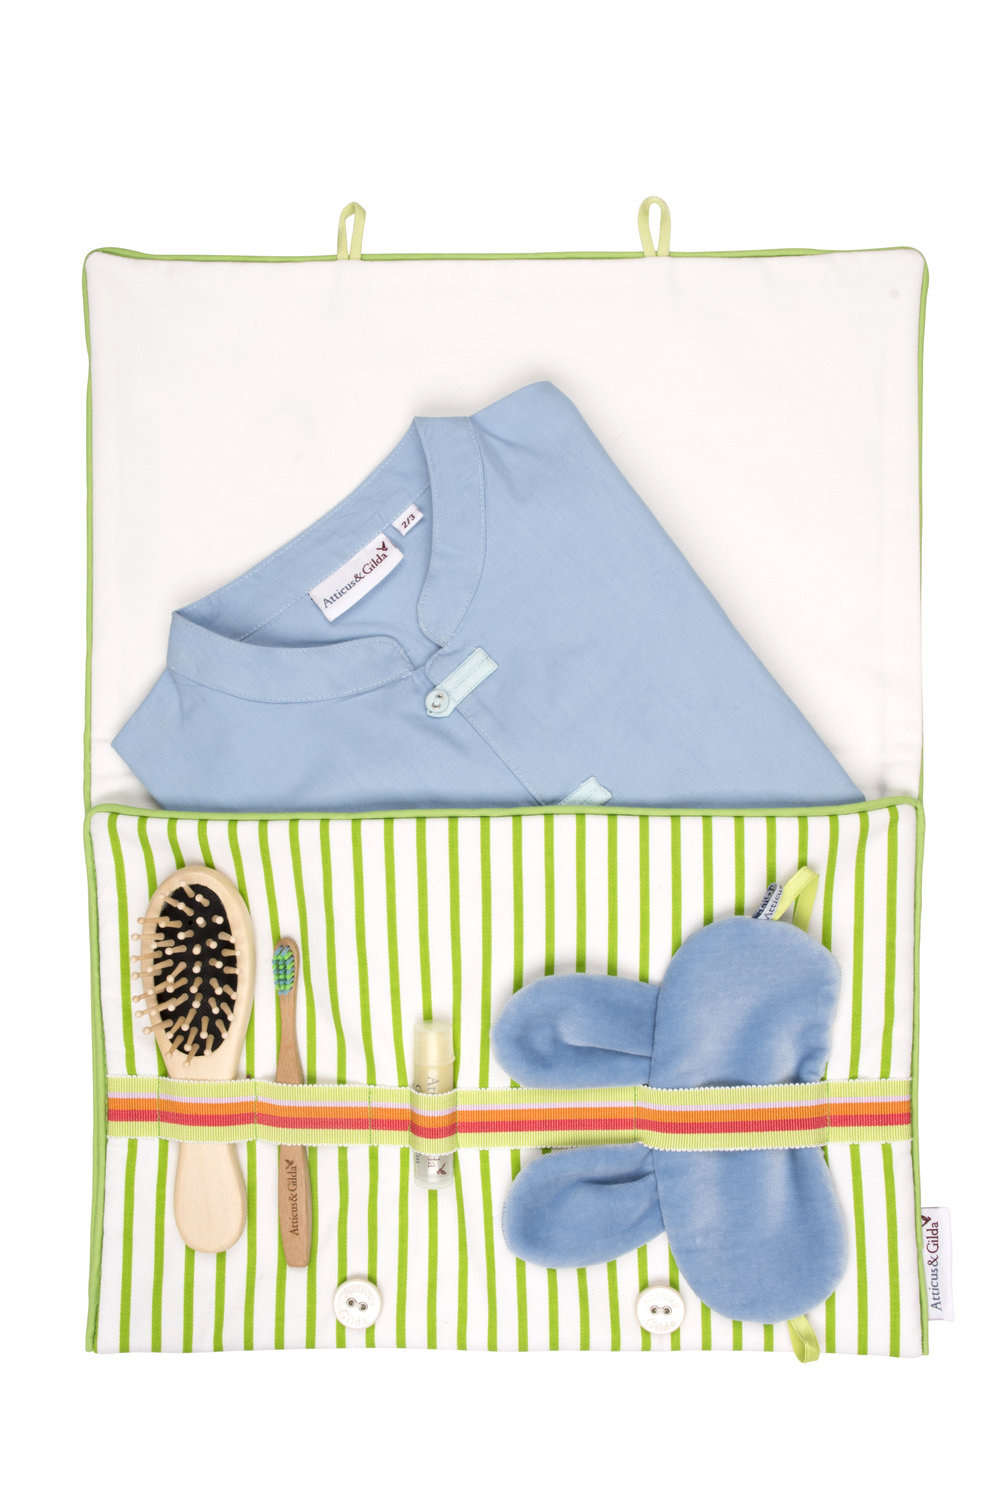 Atticus and Gilda pyjama overnight bag with brush, pyjamas, toothbrush, lip balm and sleep mask